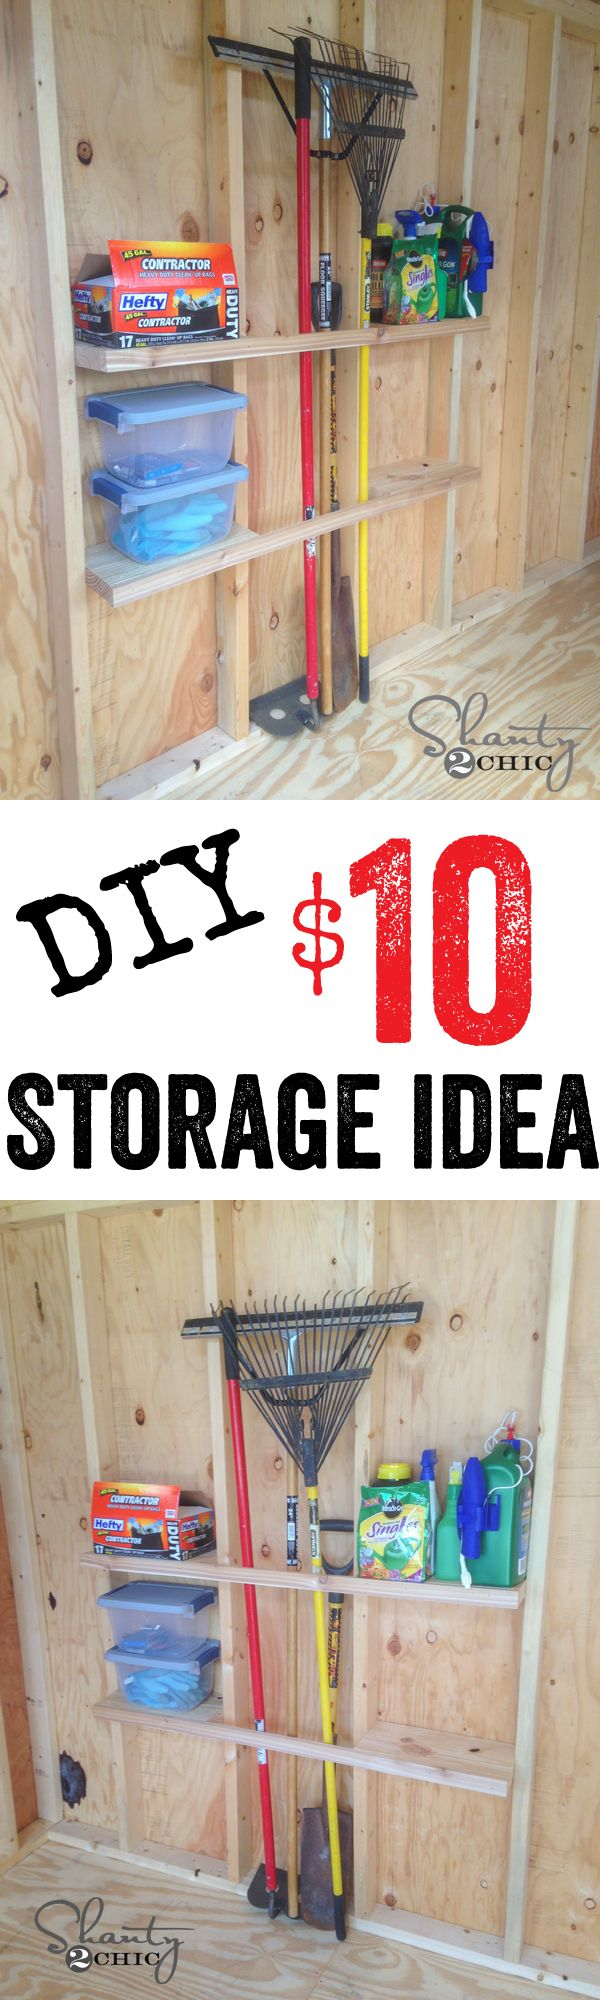 Shelving plans for shed woodworking projects plans - Cheap storage shelves diy ...